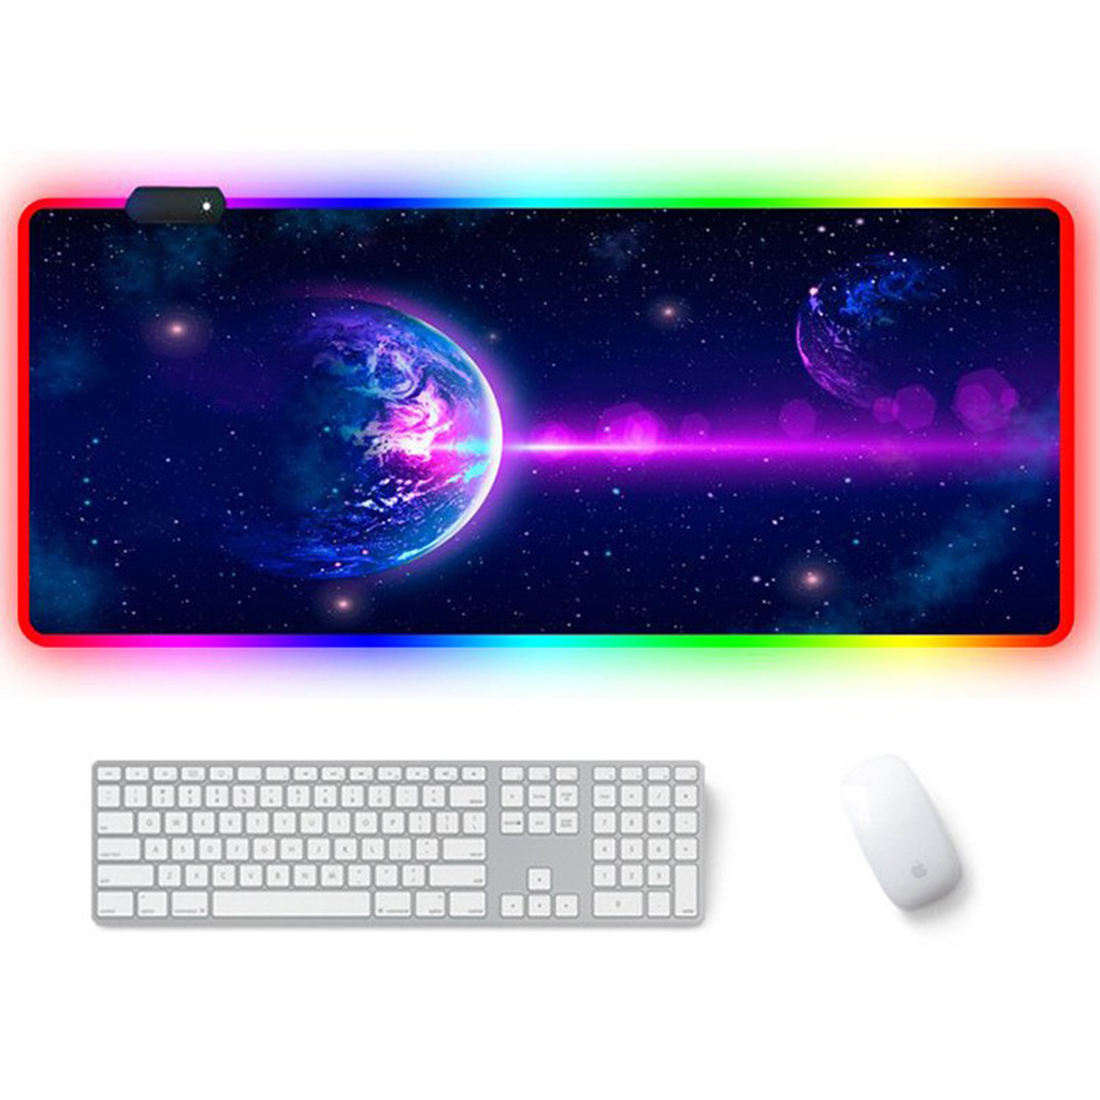 RGB Luminous Gaming Mouse Pad Colorful Oversized Desk Mat for Mechanical Keyboard Mouse